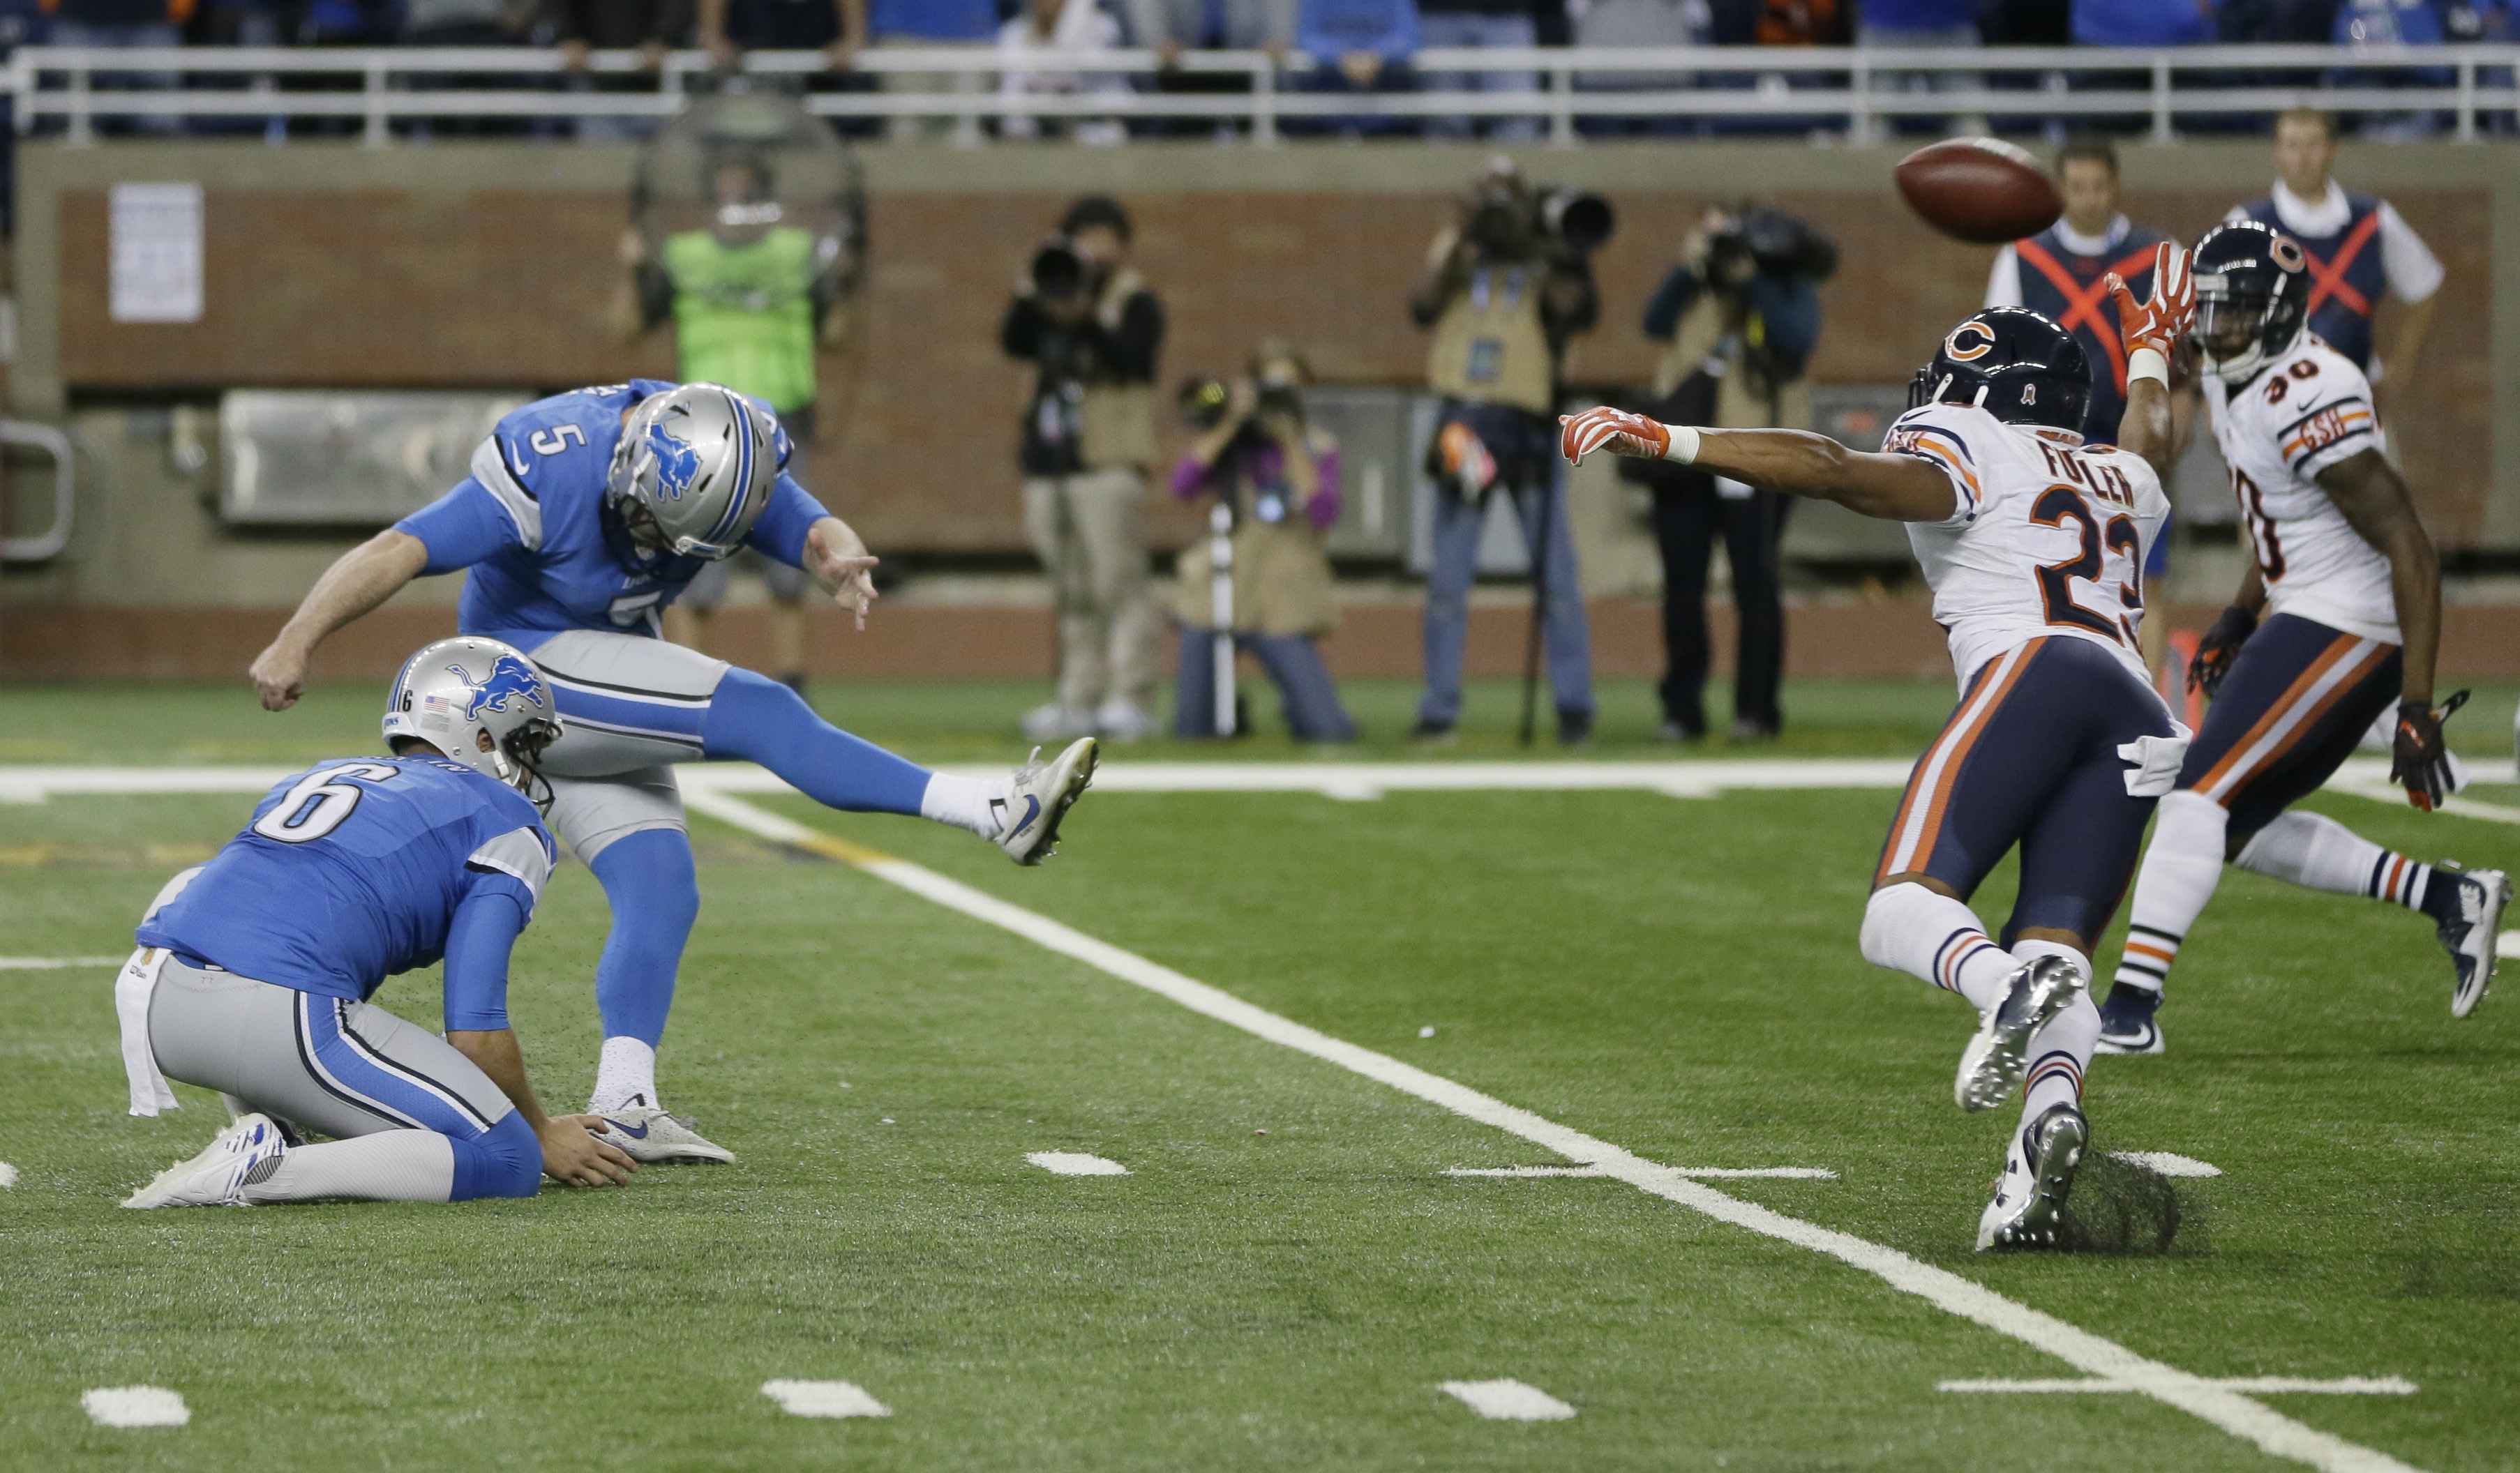 Detroit Lions kicker Matt Prater (5) kicks the game winning field goal during the overtime period of an NFL football game against the Chicago Bears, Sunday, Oct. 18, 2015, in Detroit. (AP Photo/Carlos Osorio)